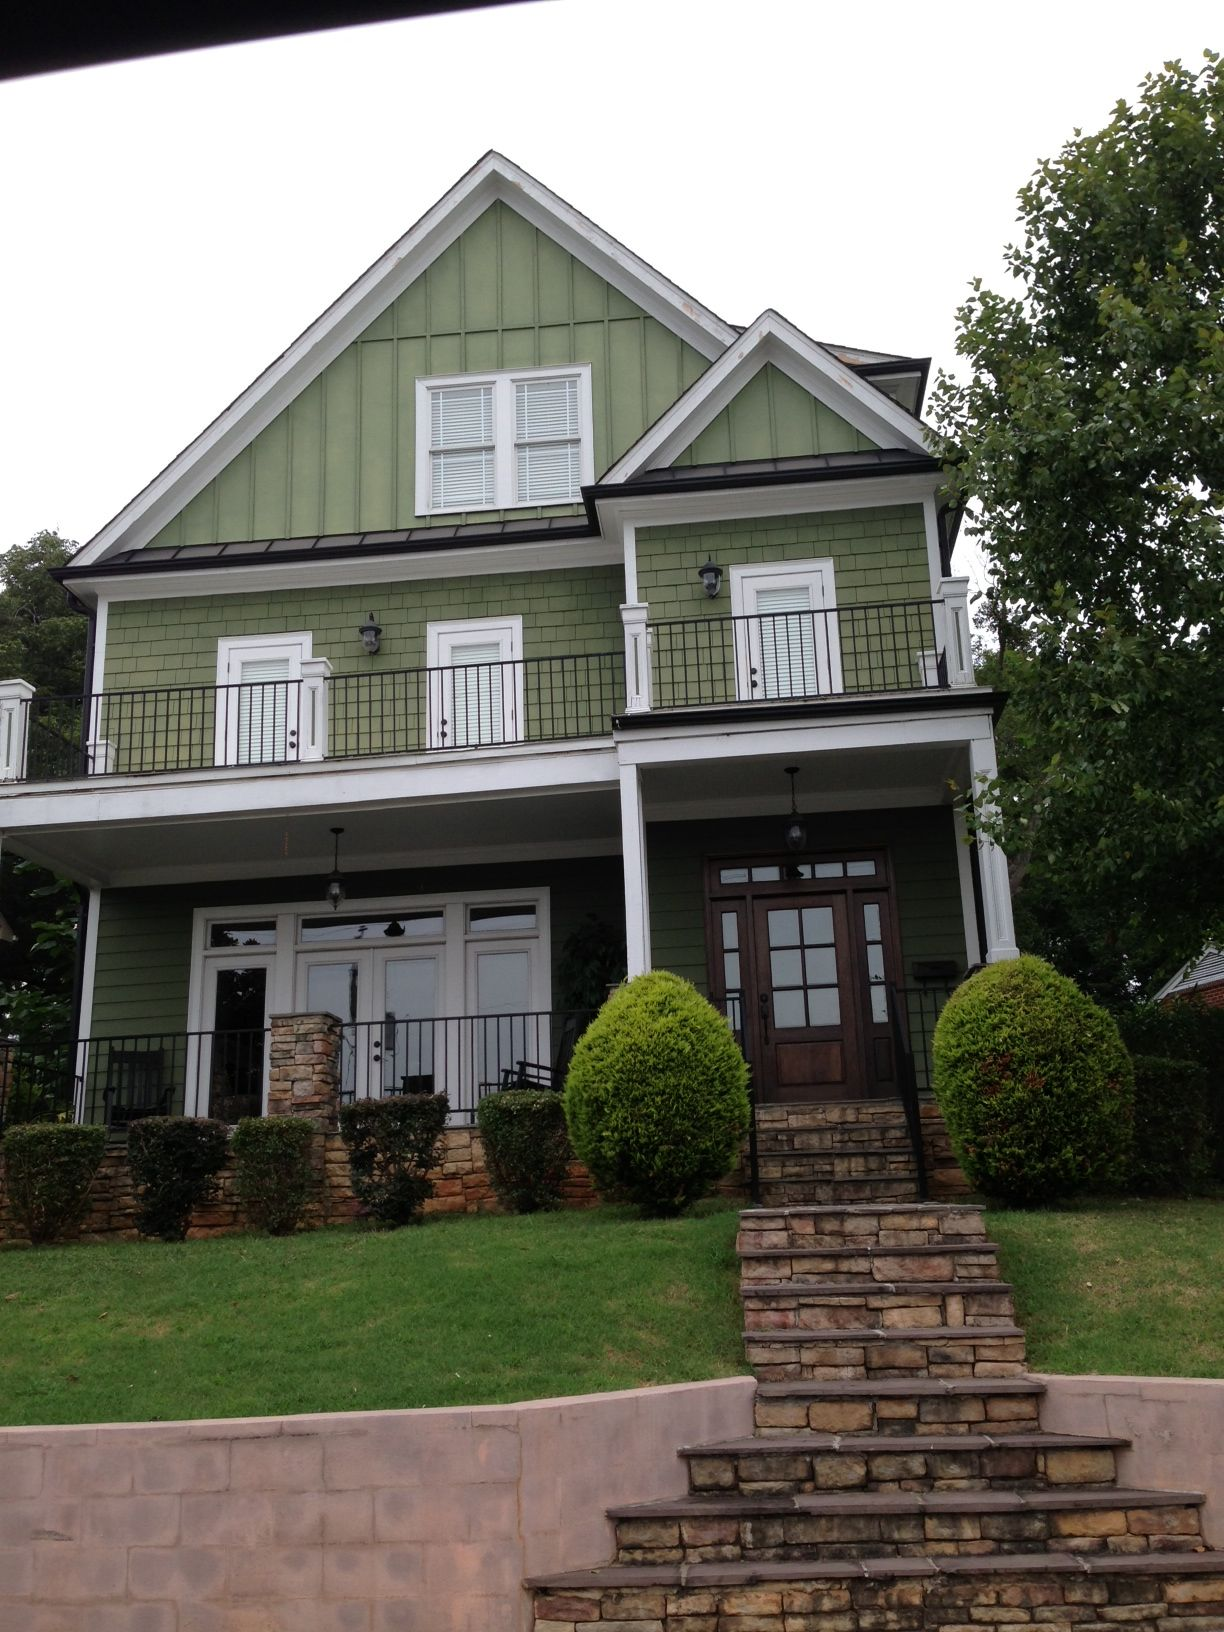 different exterior materials | House styles, Exterior ...